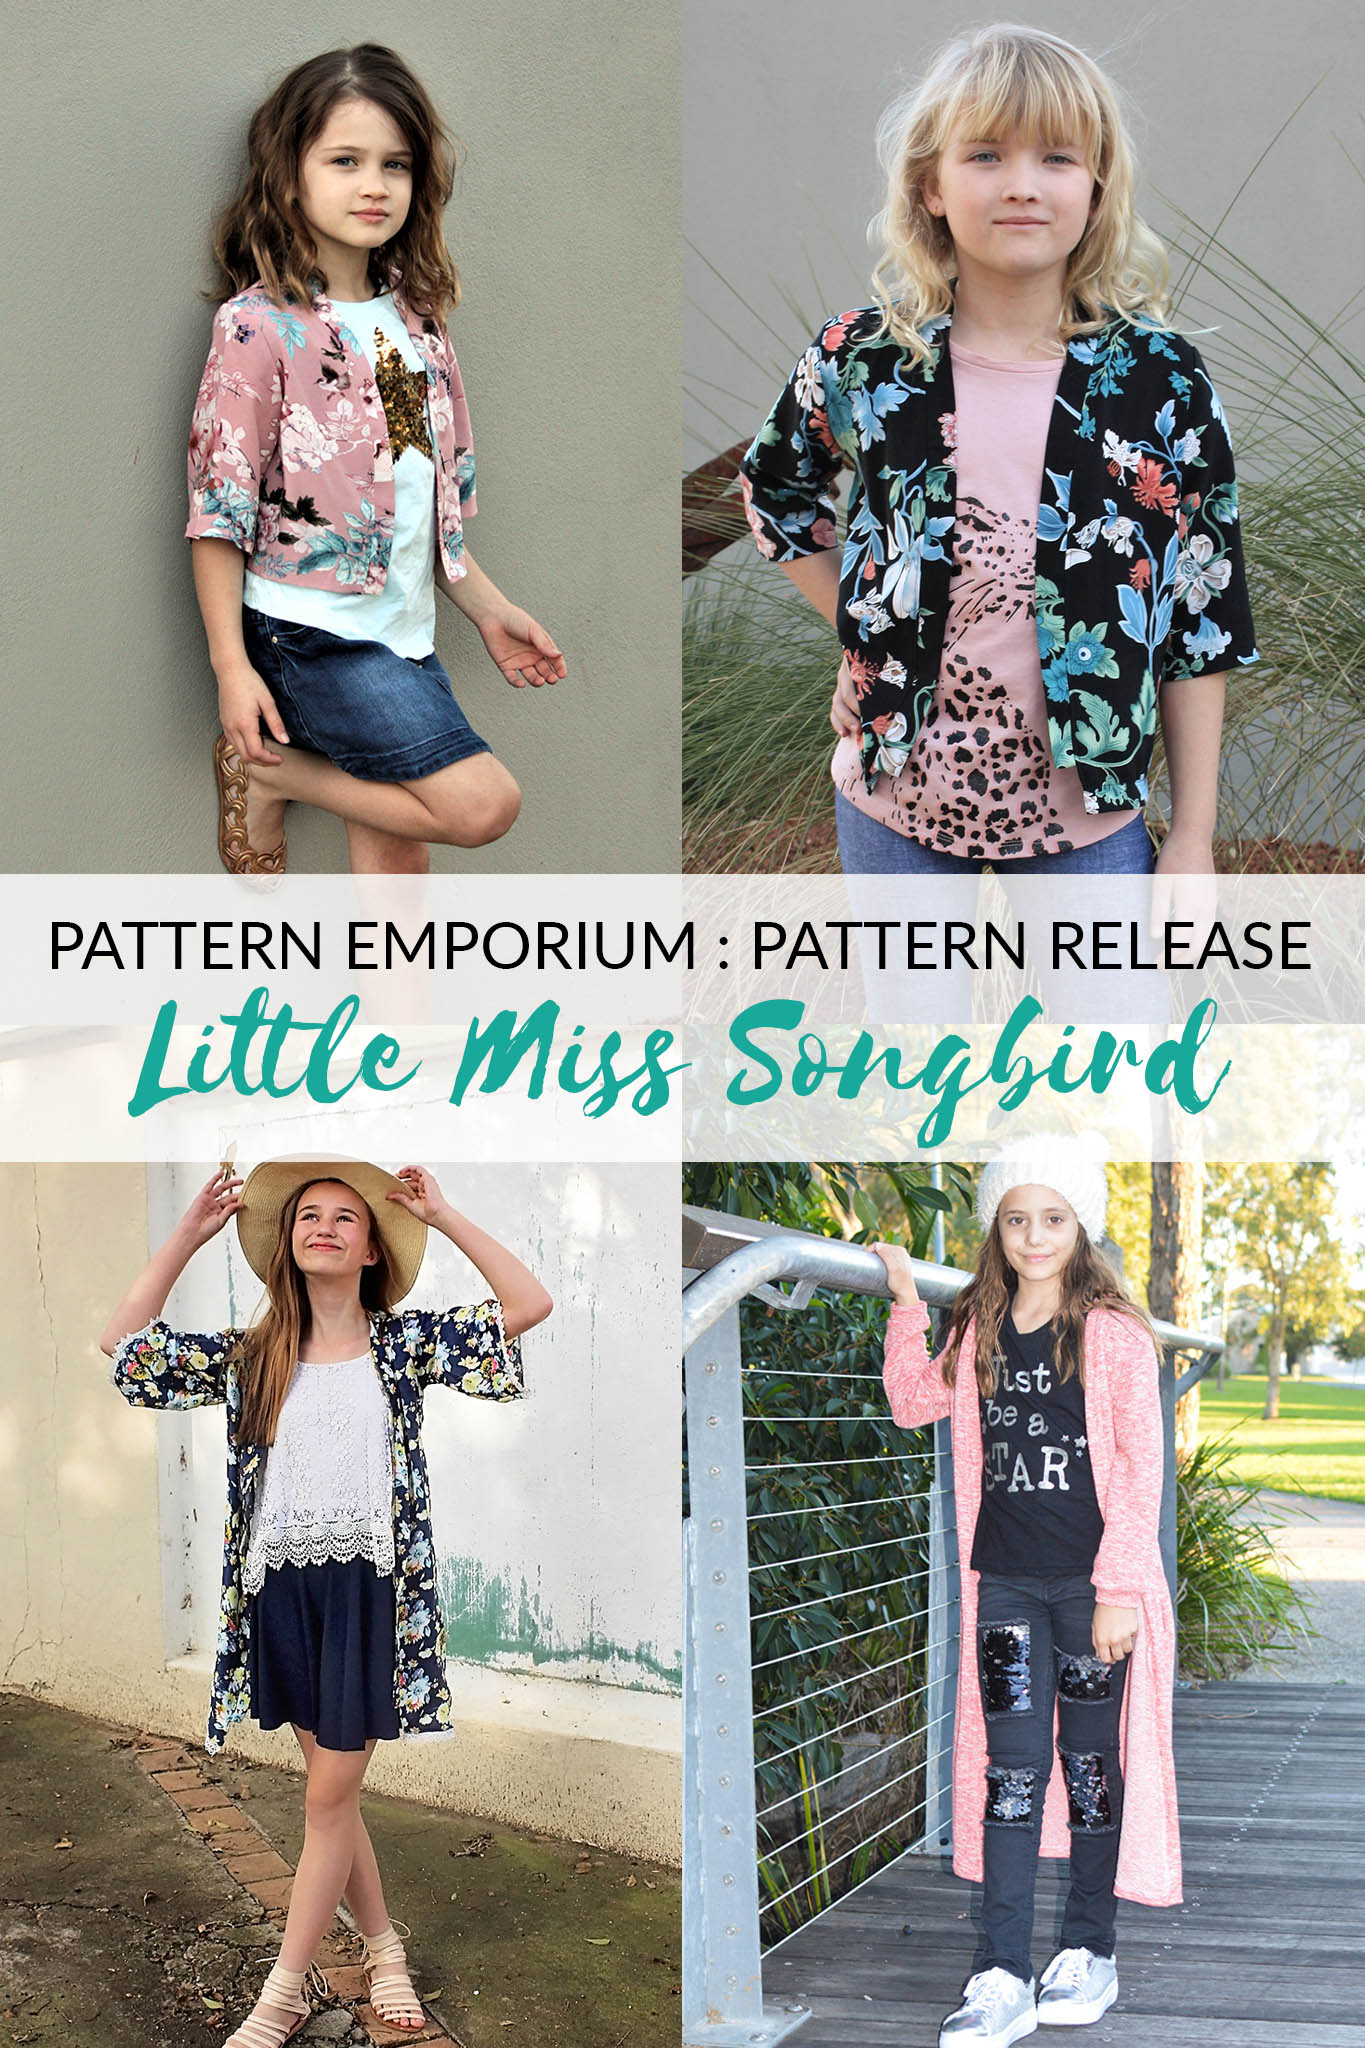 Style Chat: Little Miss Songbird